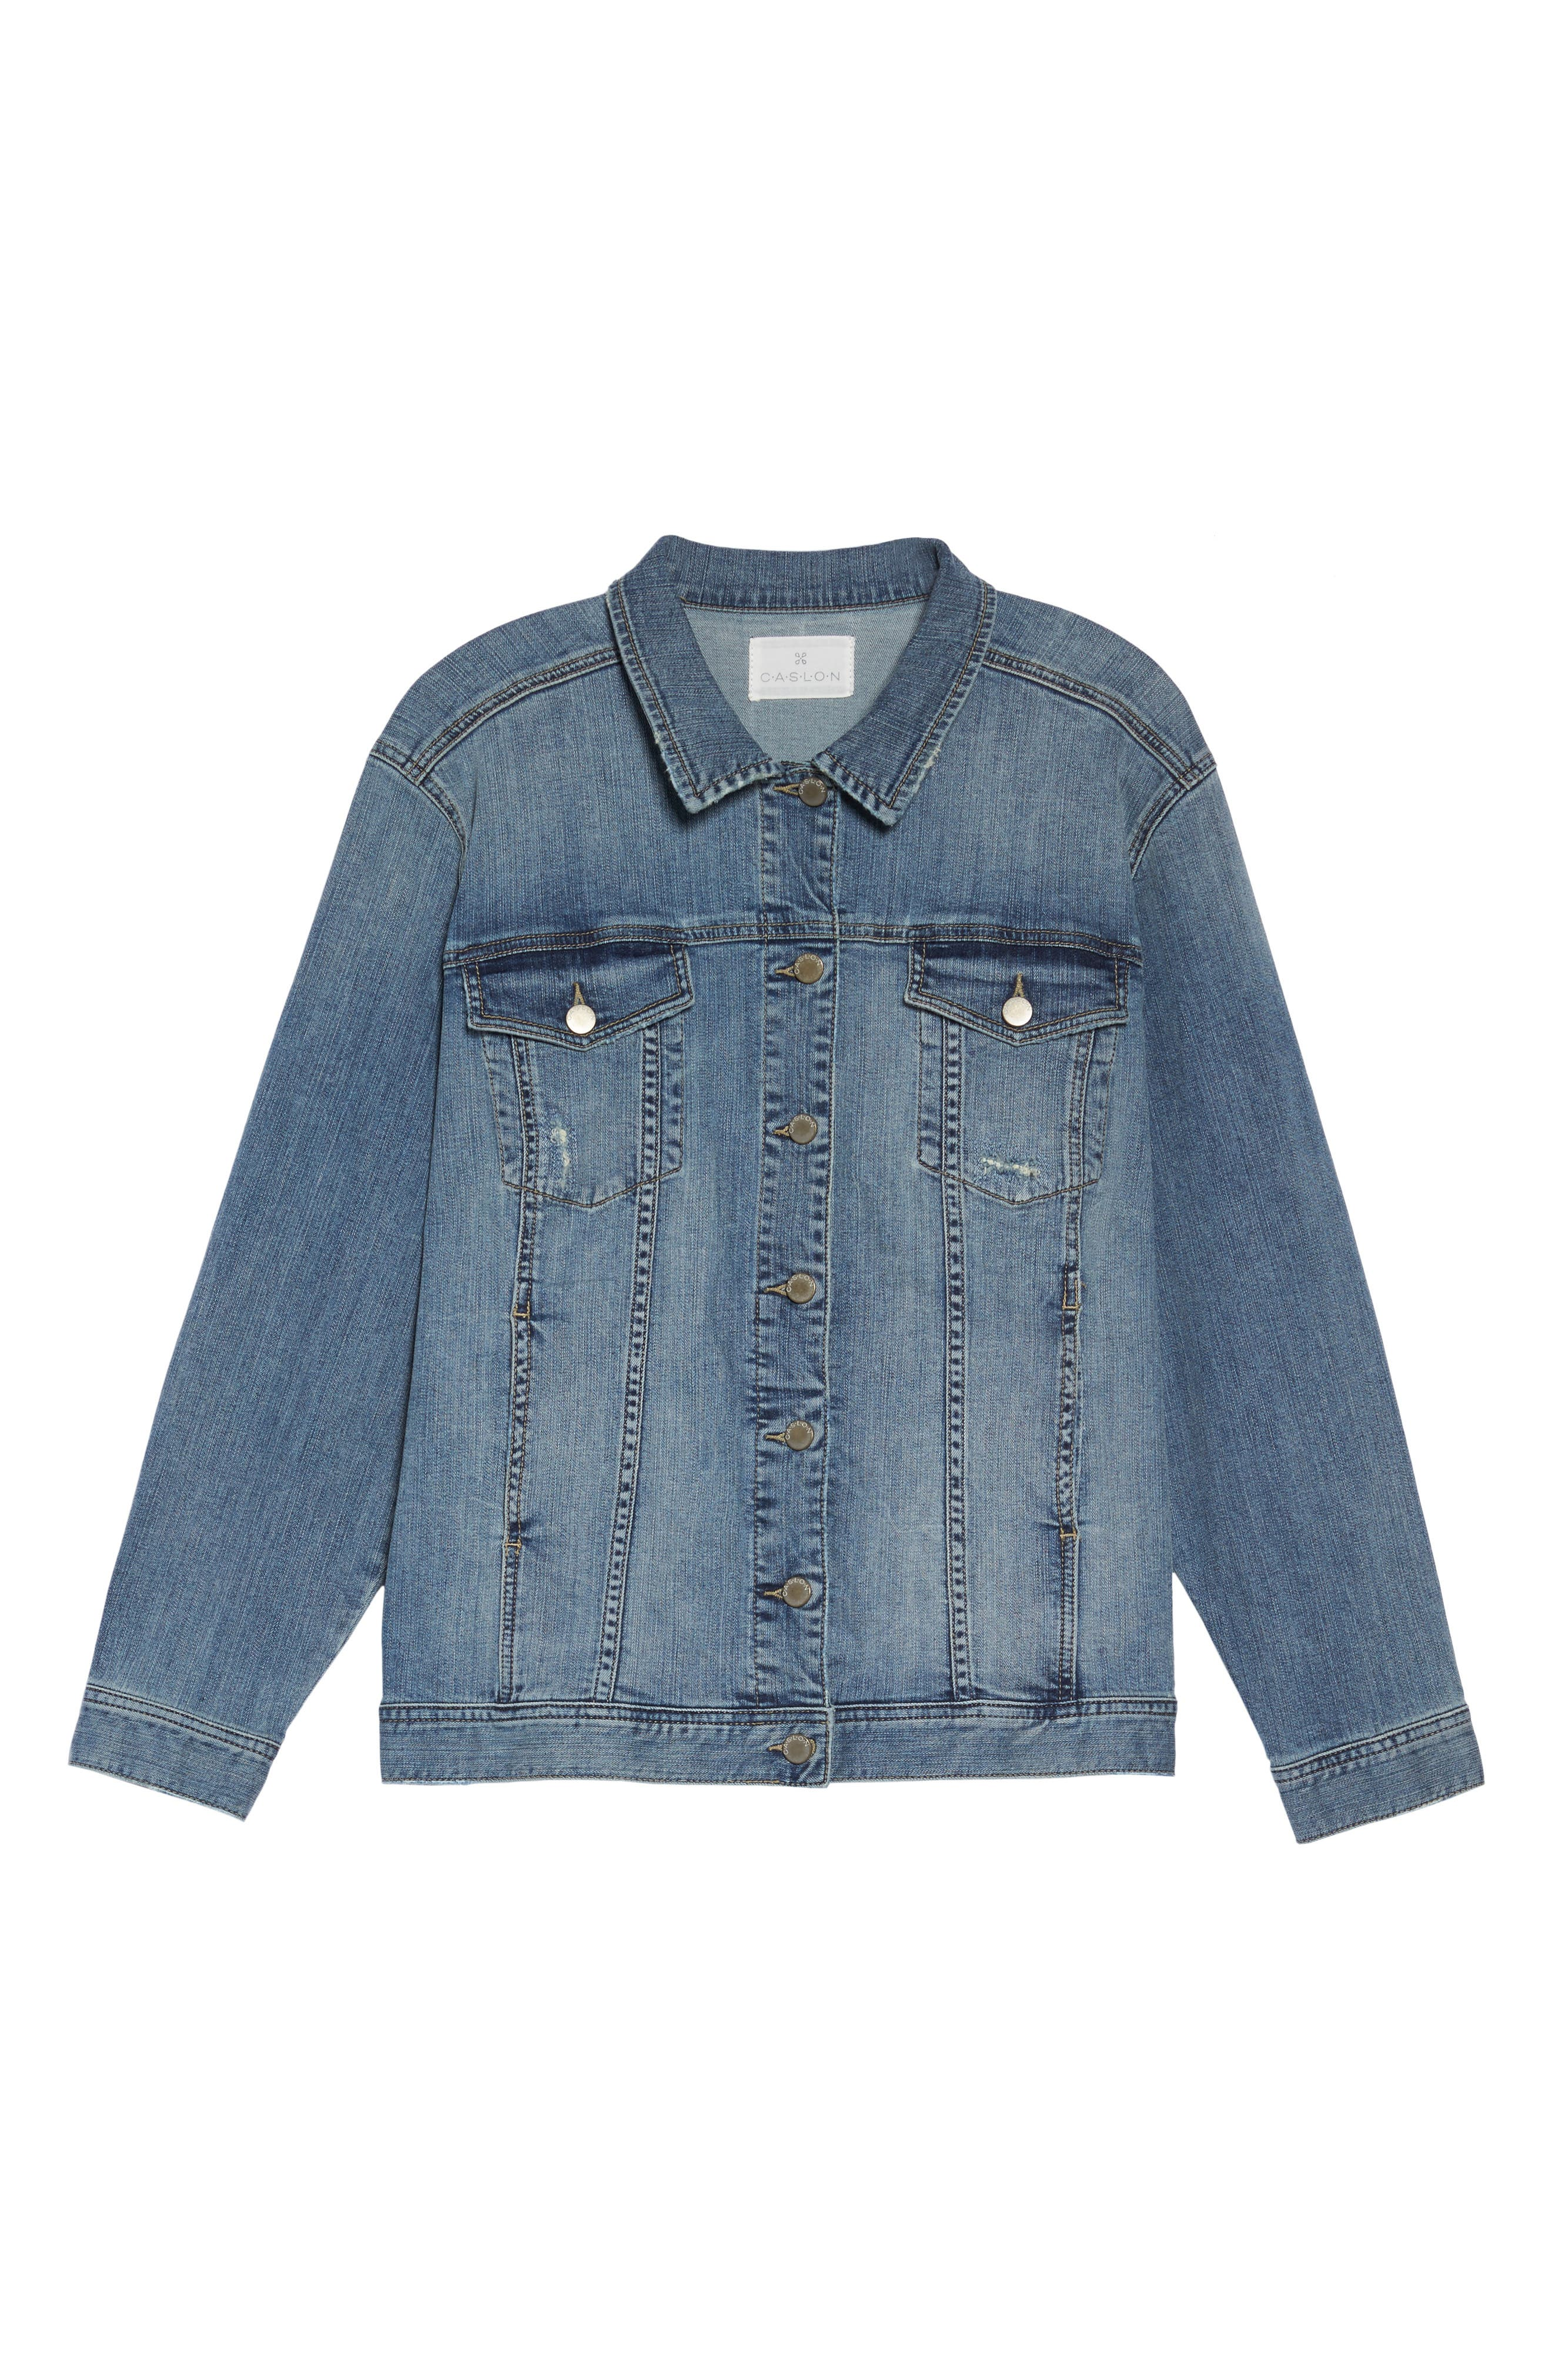 Relaxed Fit Denim Jacket,                             Alternate thumbnail 5, color,                             420